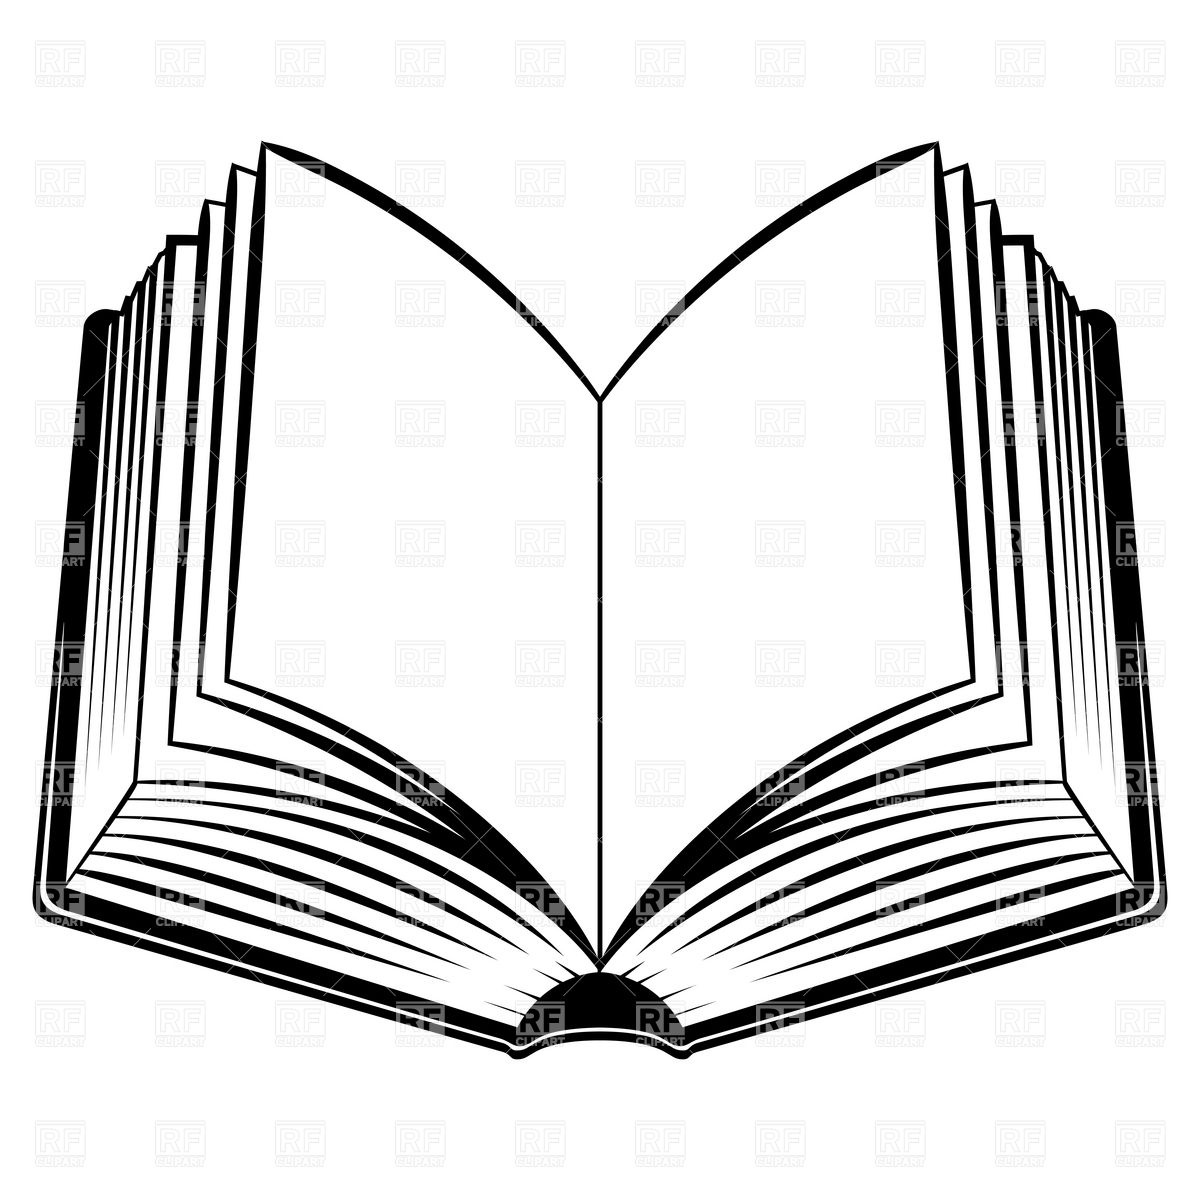 hight resolution of open book outline clipart free clipart images 2